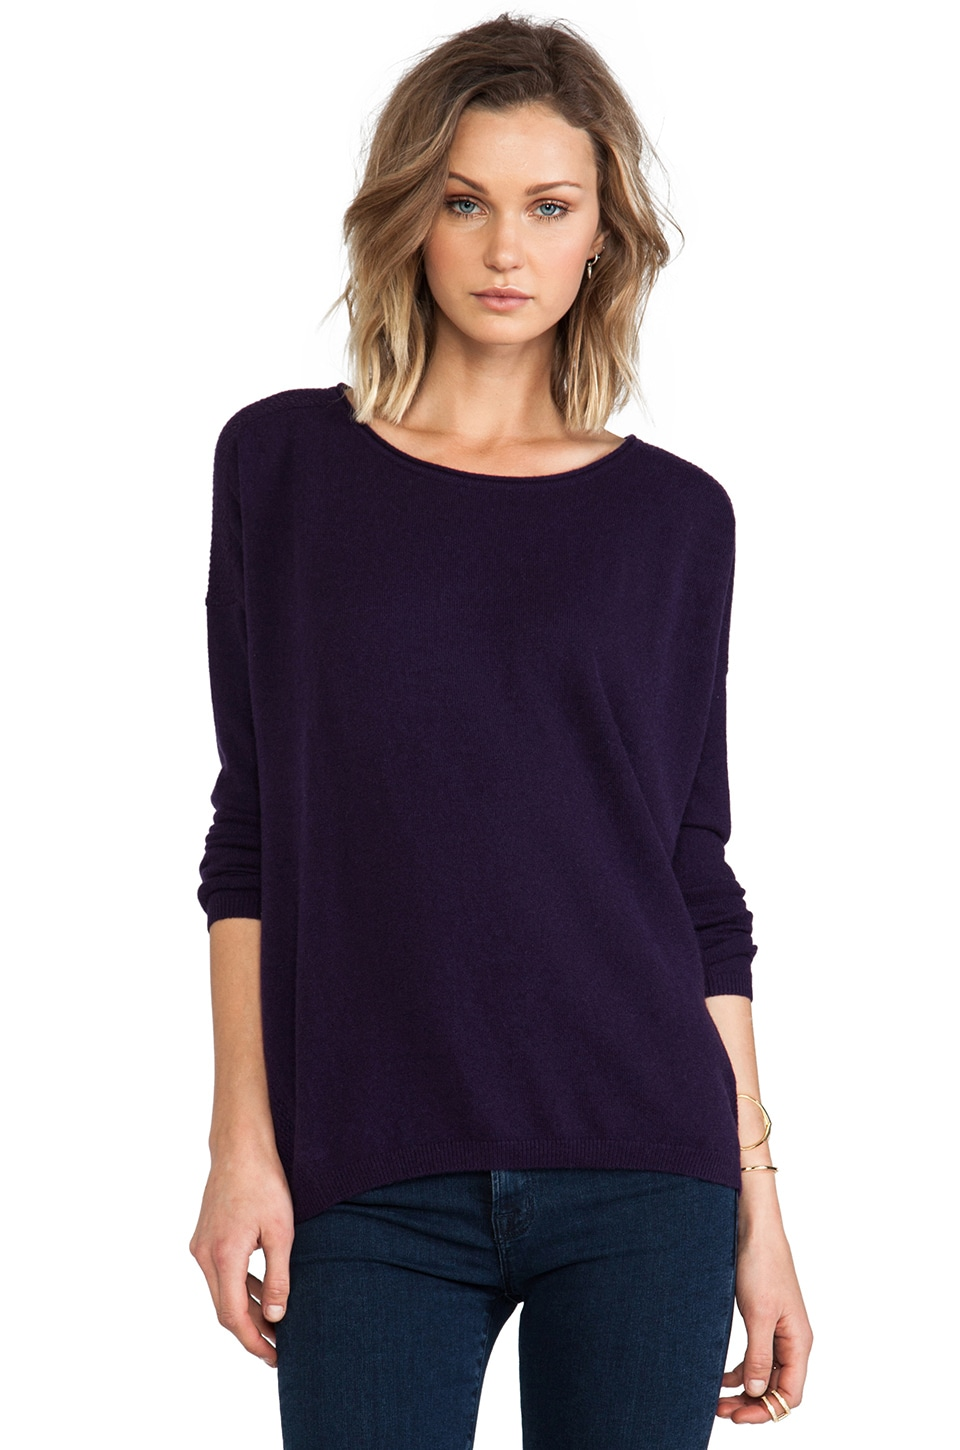 Vince Cashmere Sweater in Grape